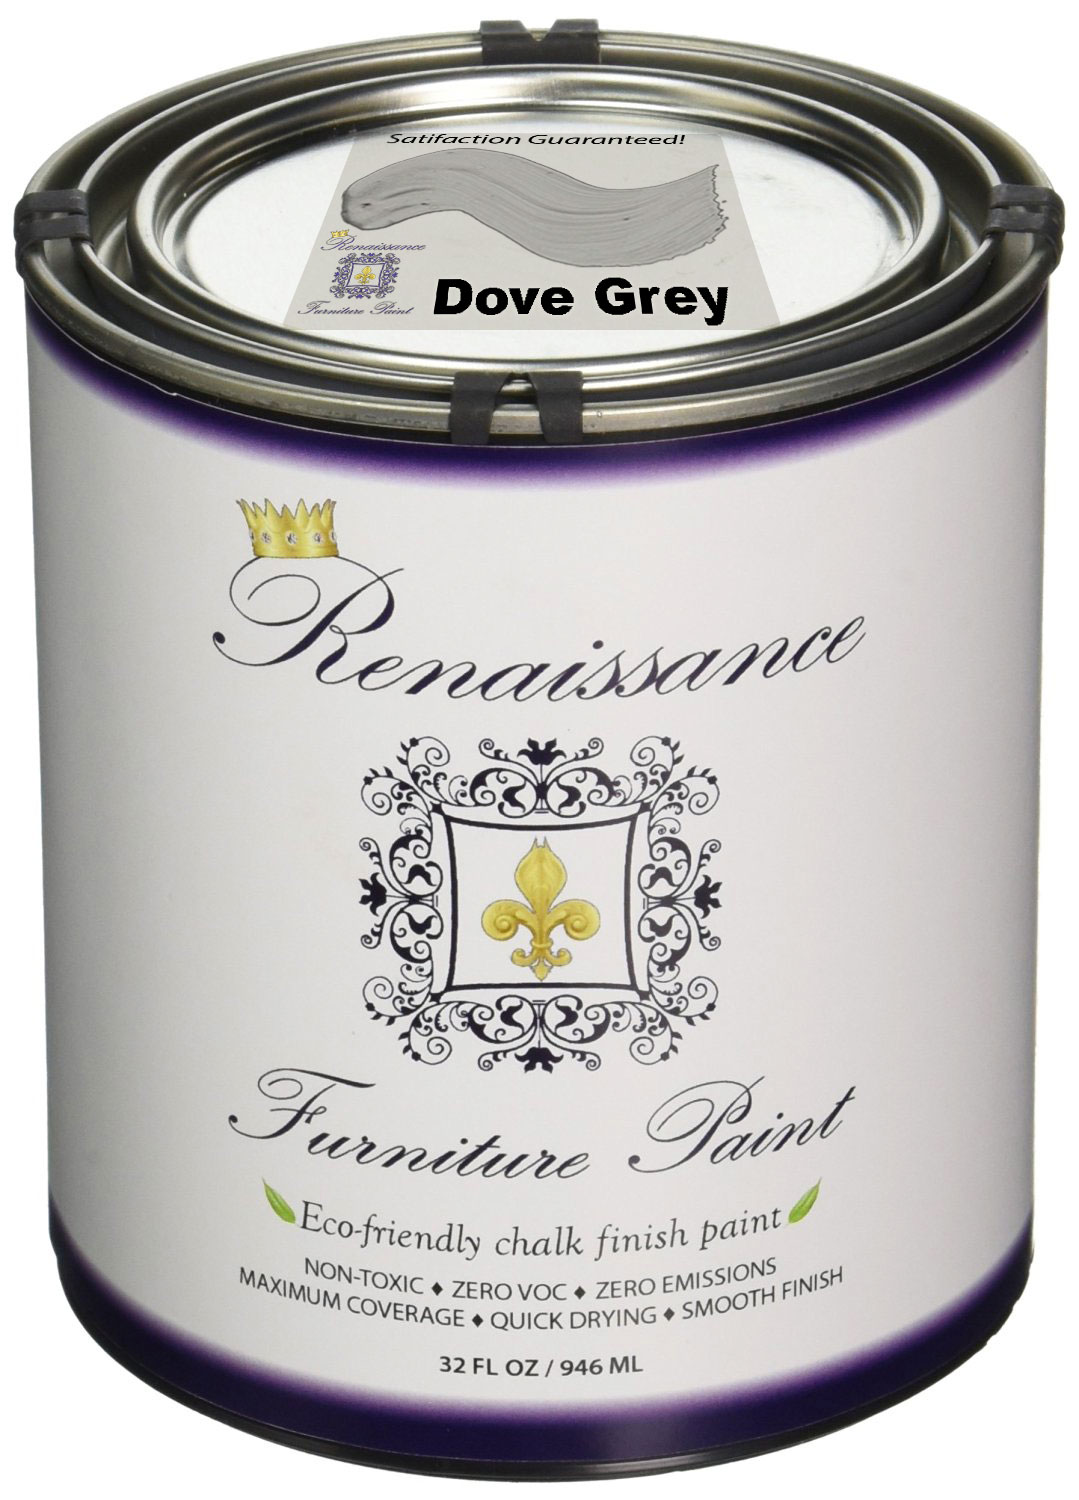 Renaissance Chalk Finish Paint   Dove Grey Quart (32oz)   Chalk Furniture U0026  Cabinet Paint   Non Toxic, Eco Friendly, Superior Coverage   Walmart.com